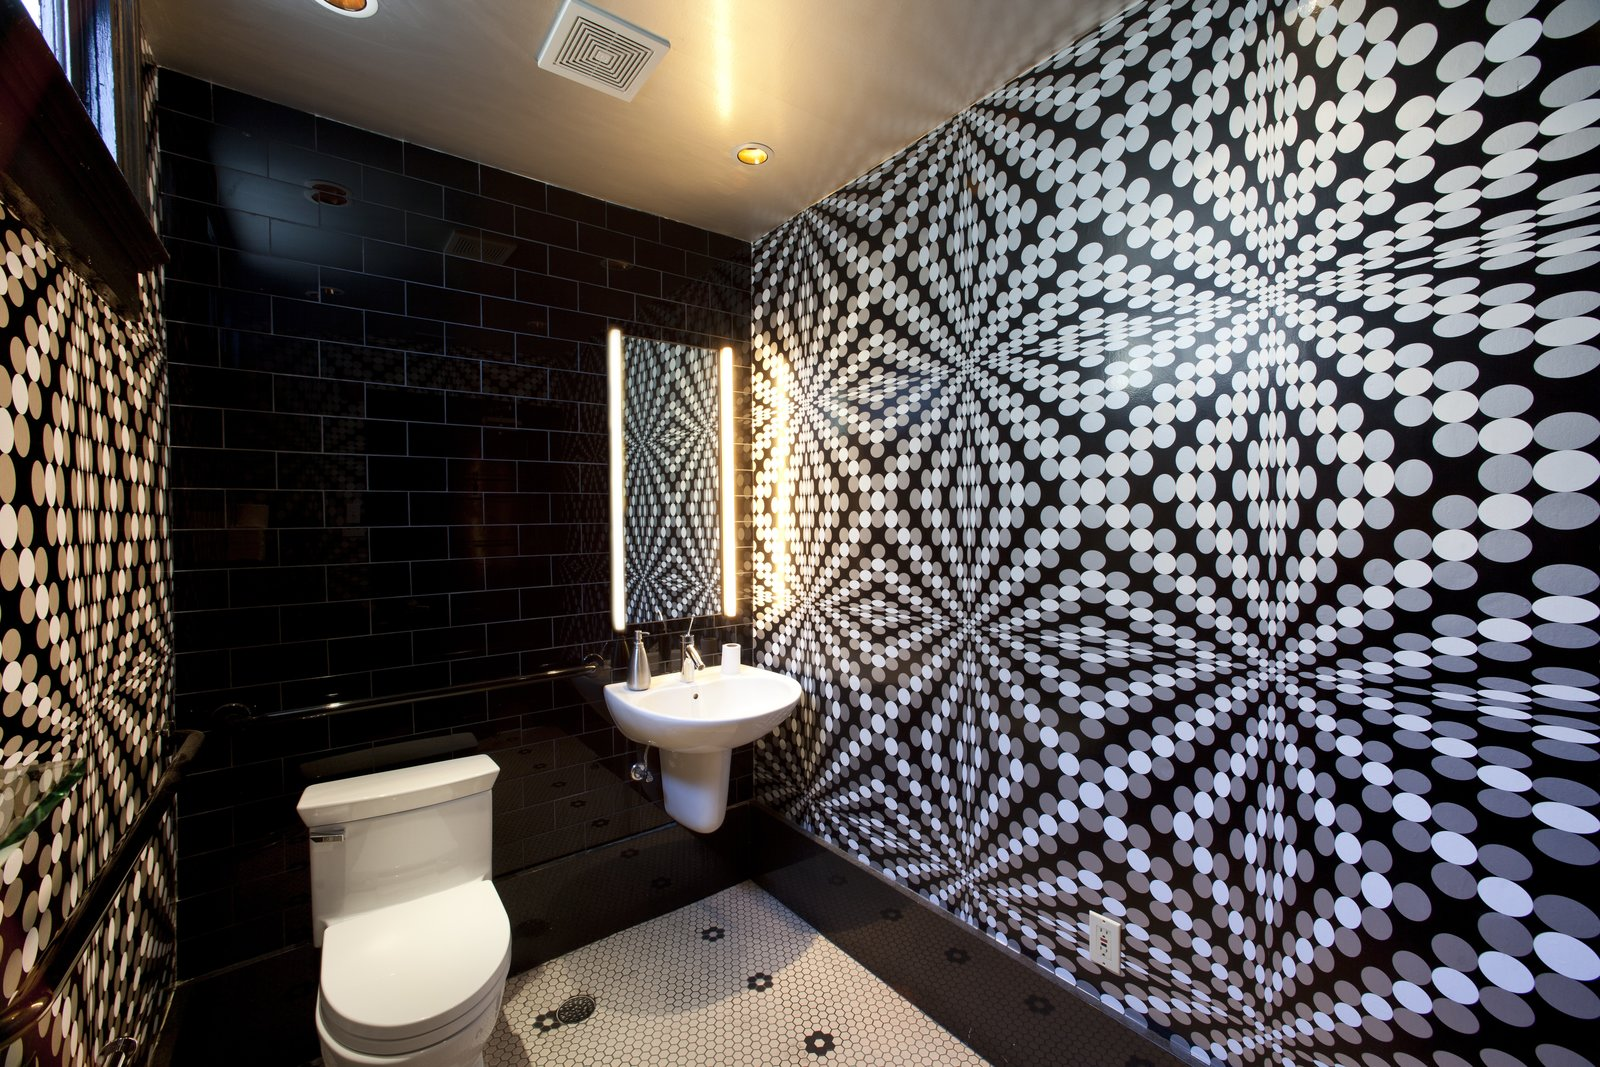 """Usage of the space to be wallpapered is also key,"" Sherman says. ""If you are installing in a bathroom, you certainly don't want to use anything water sensitive. And if you have kids or pets, you don't want anything that can't be cleaned easily. Once you have determined these aspects, you can swing any direction on color and pattern to suit your taste.""  Photo 19 of 42 in Wallpaper That Fixes Walls"